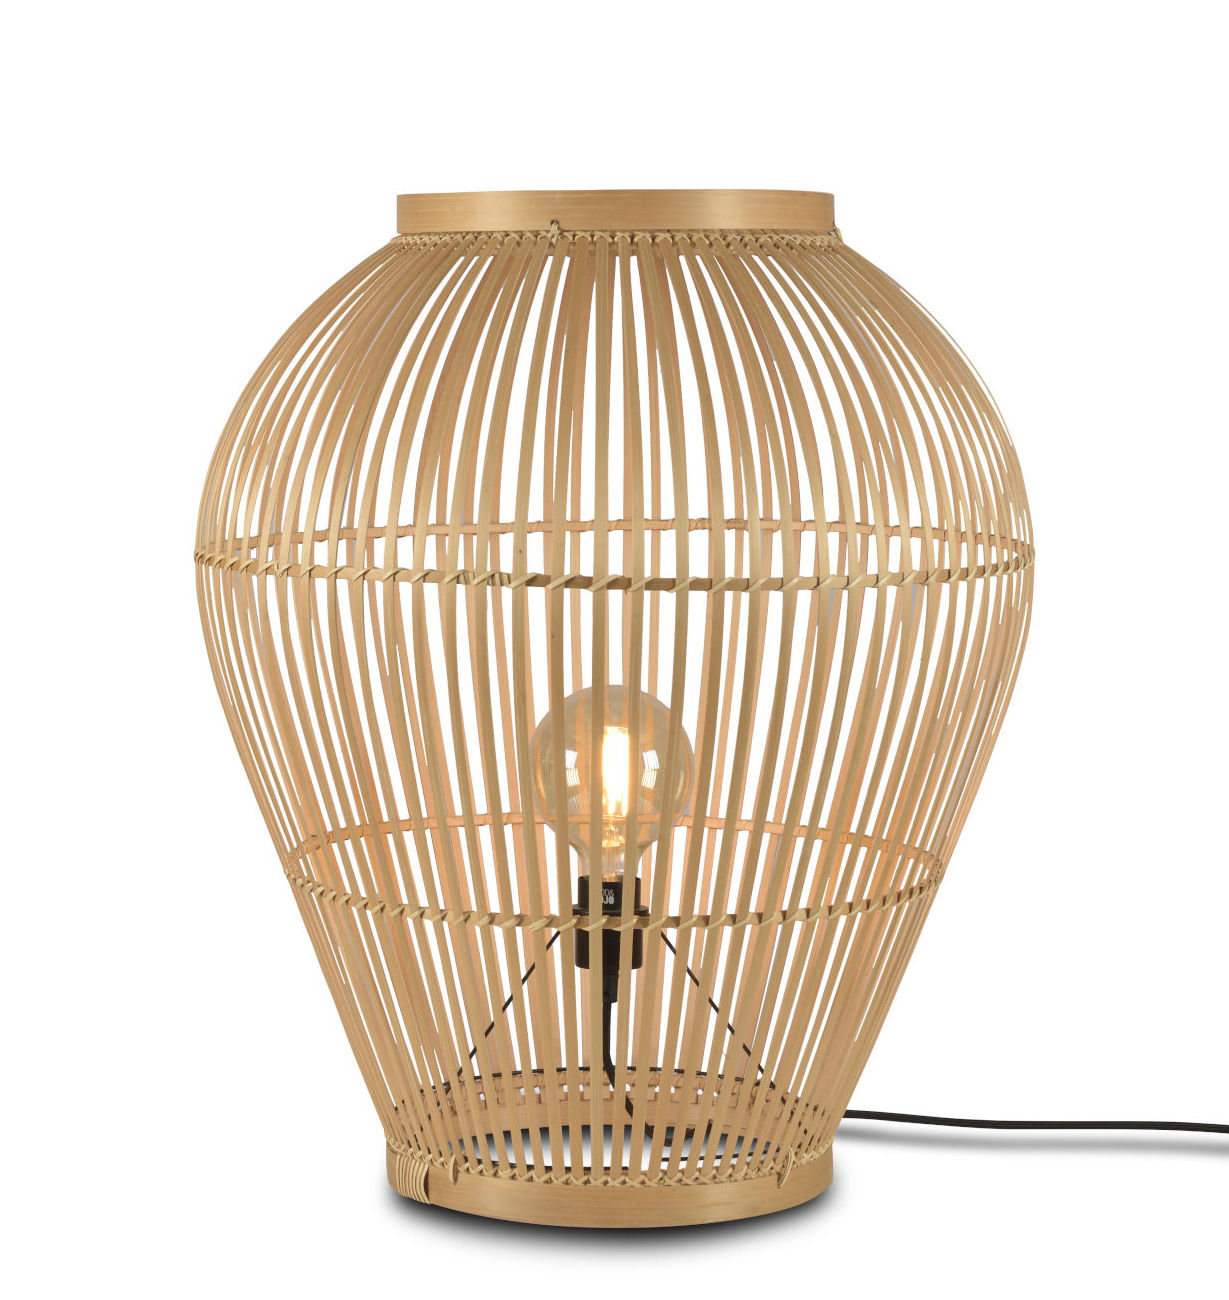 Lighting - Floor lamps - Tuvalu Large Lamp - / Bamboo - H 70 cm by GOOD&MOJO - H 70 cm / Natural - Bamboo